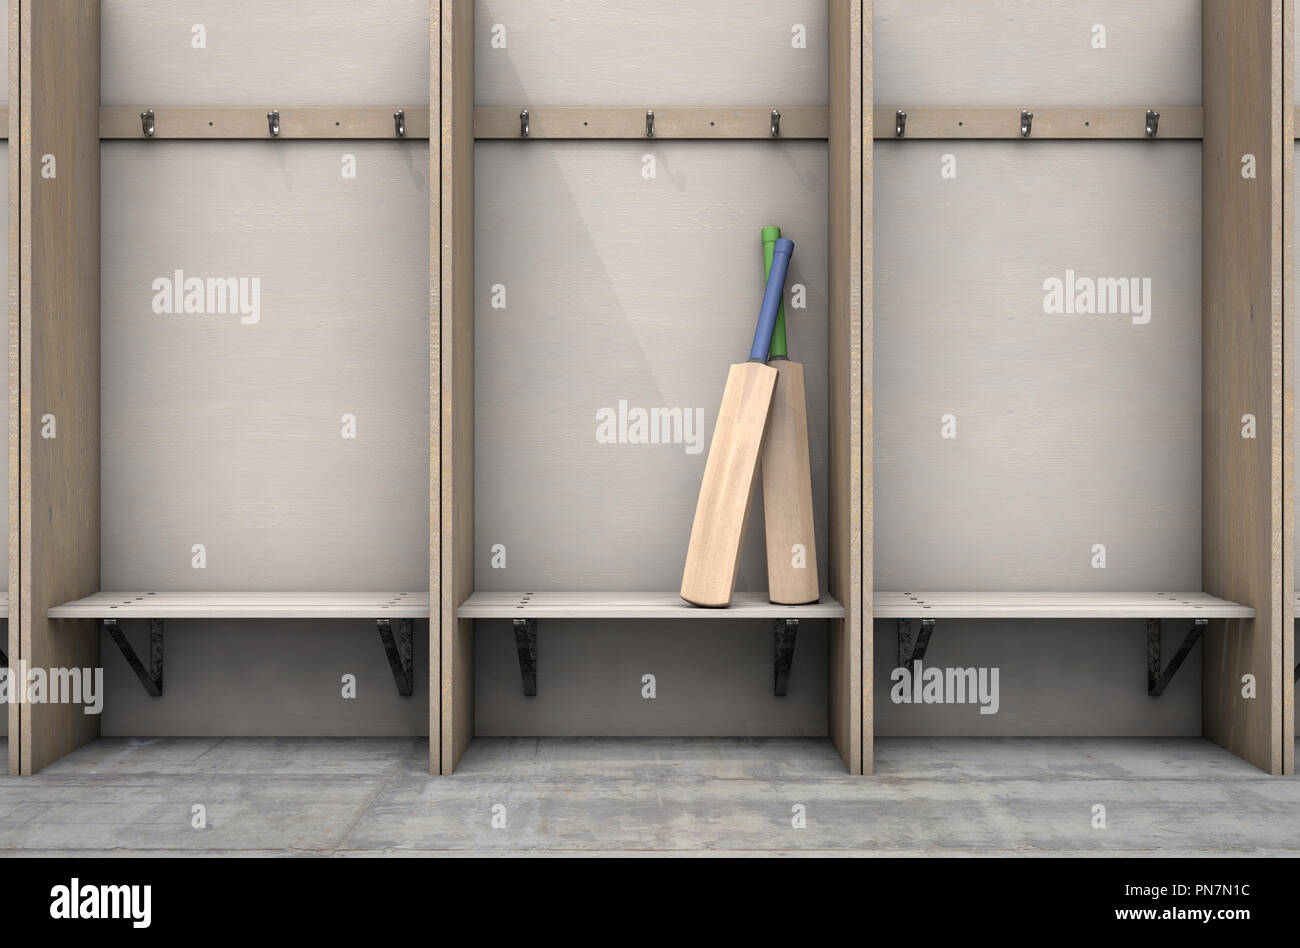 Fabulous Two Cricket Bats In A Wooden Cubicle With A Bench And Beatyapartments Chair Design Images Beatyapartmentscom